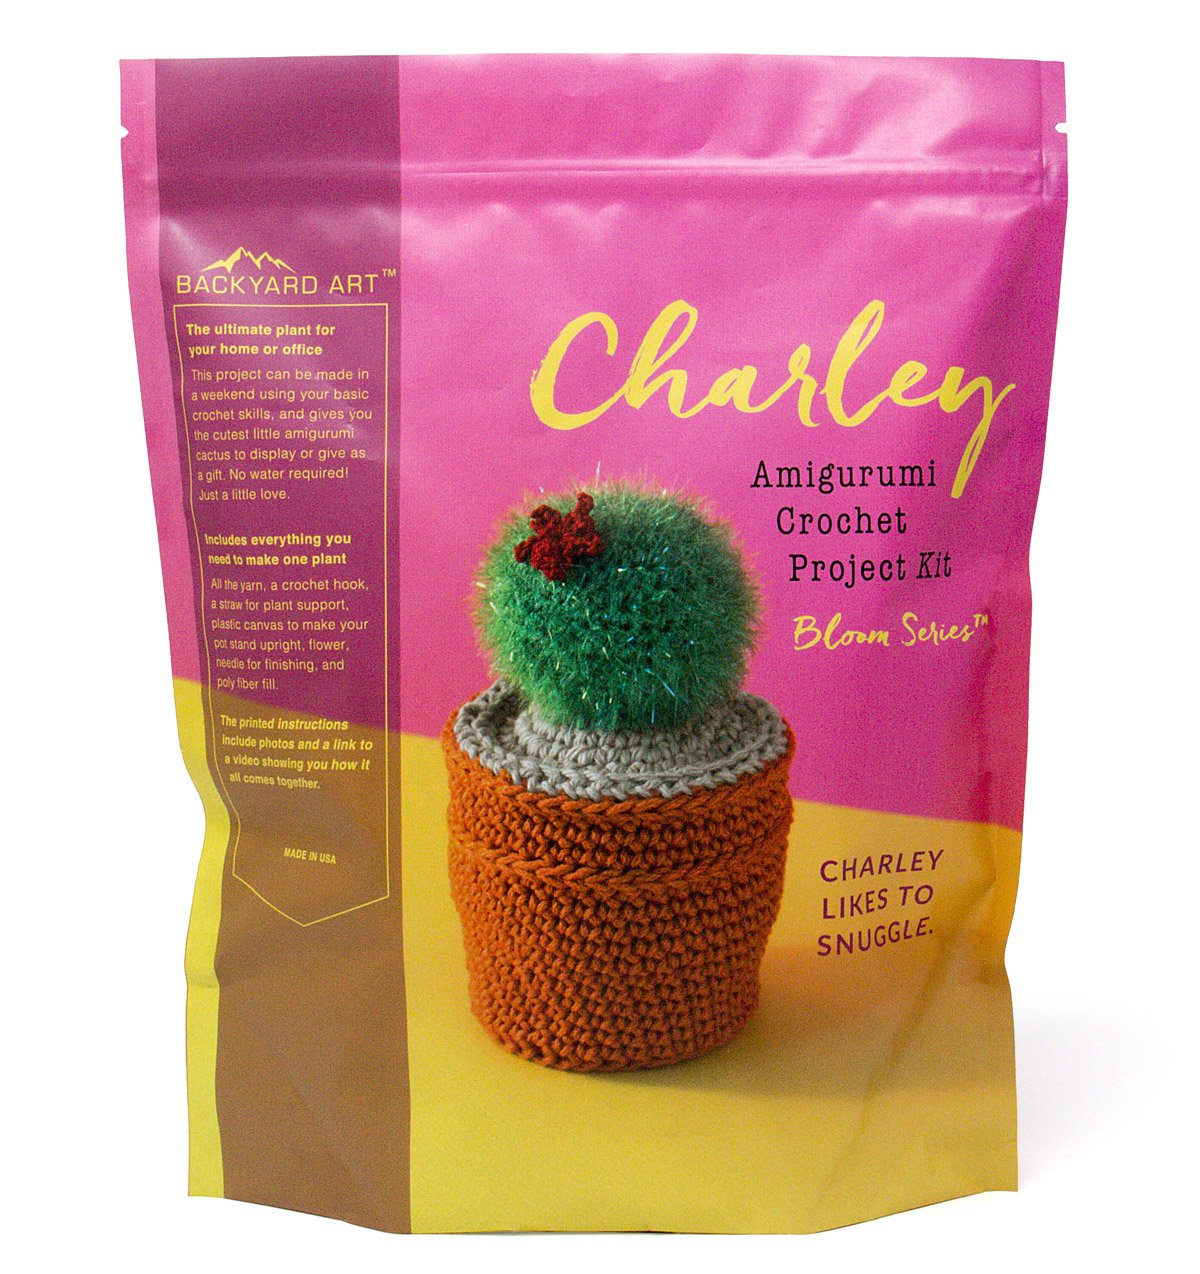 Charley The Cactus Crochet Kit an Amigurumi DIY Craft Project with Everything Including a Hook, Pattern, Yarn, Needle and Video Instructions - Easy to Learn DIY Gift Kits LIL Bear Global Backyard Industries BC-2